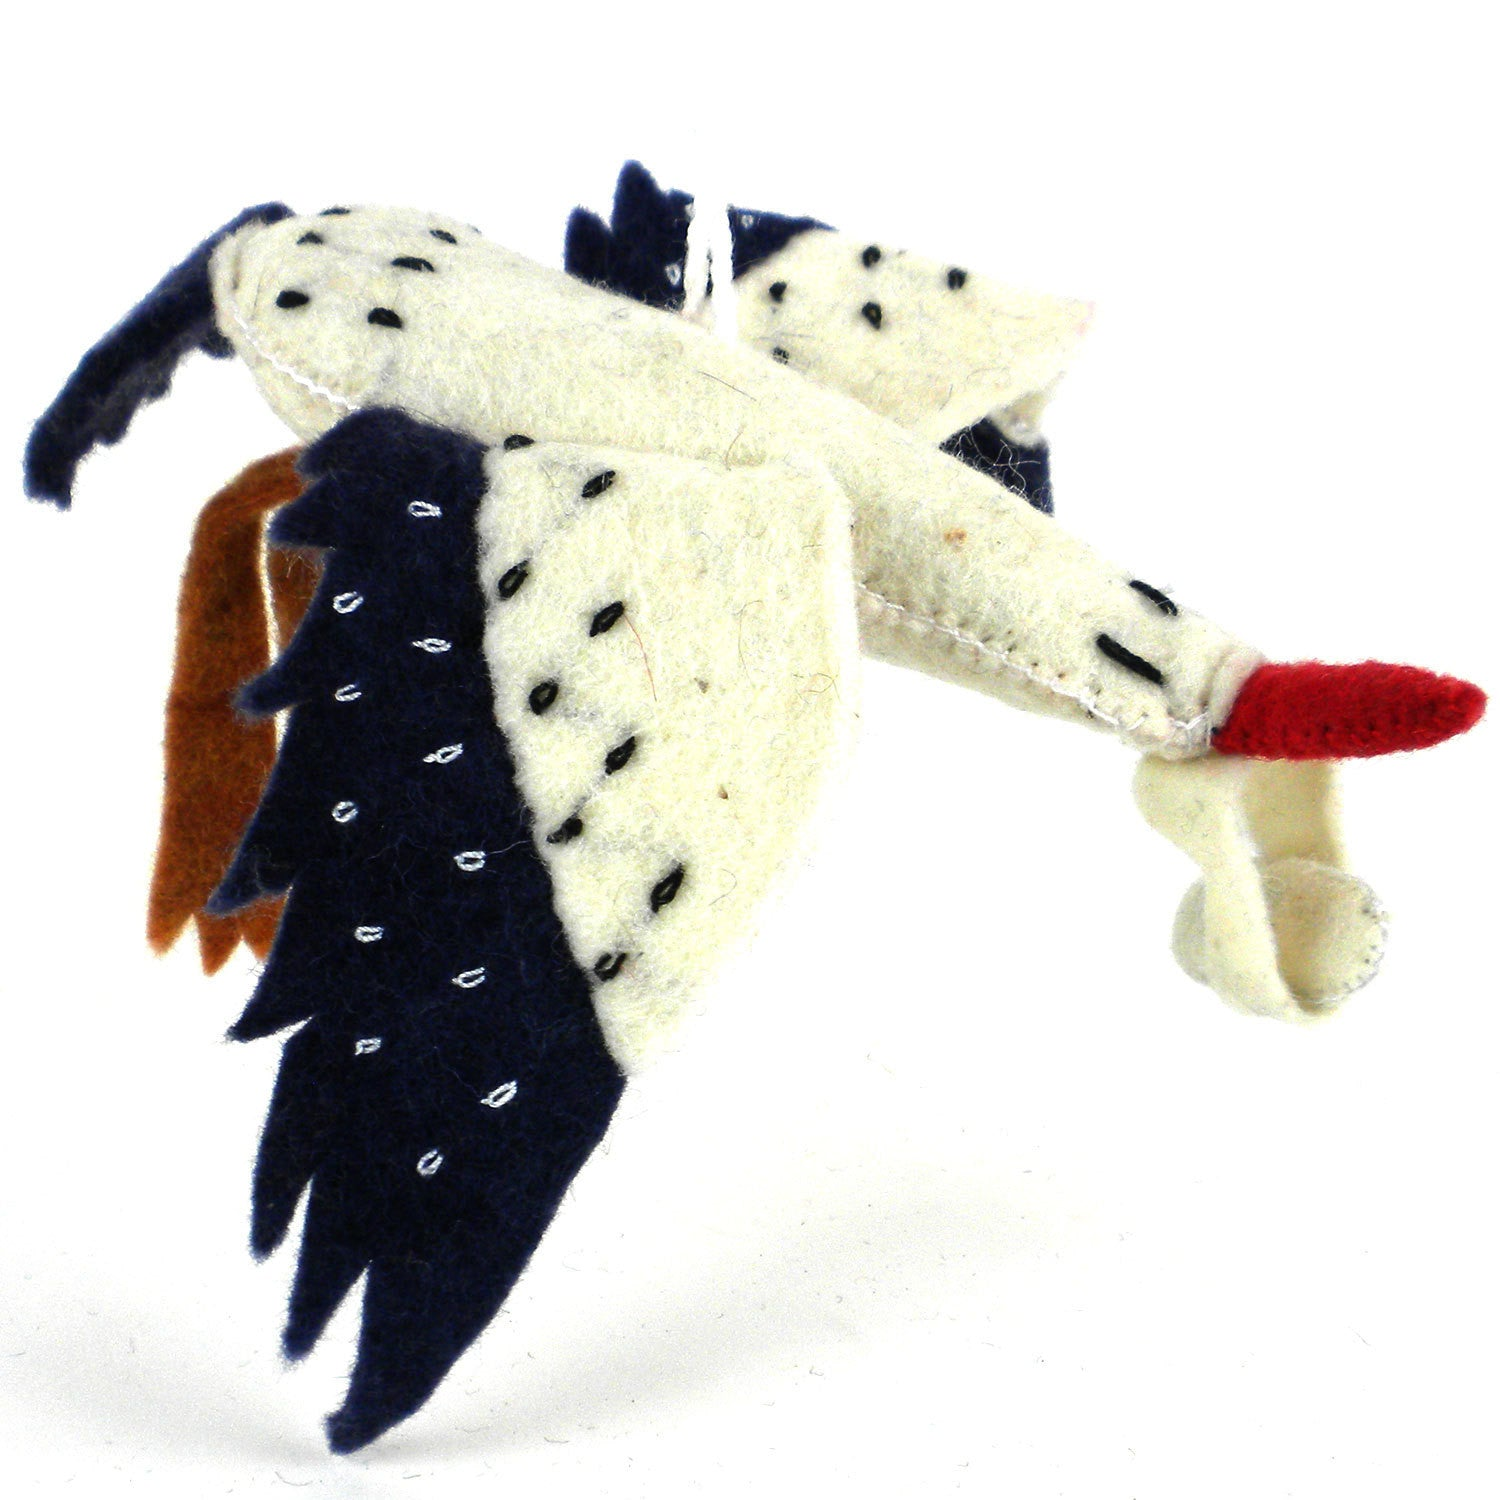 Stork Felt Holiday Ornament - Silk Road Bazaar (O)